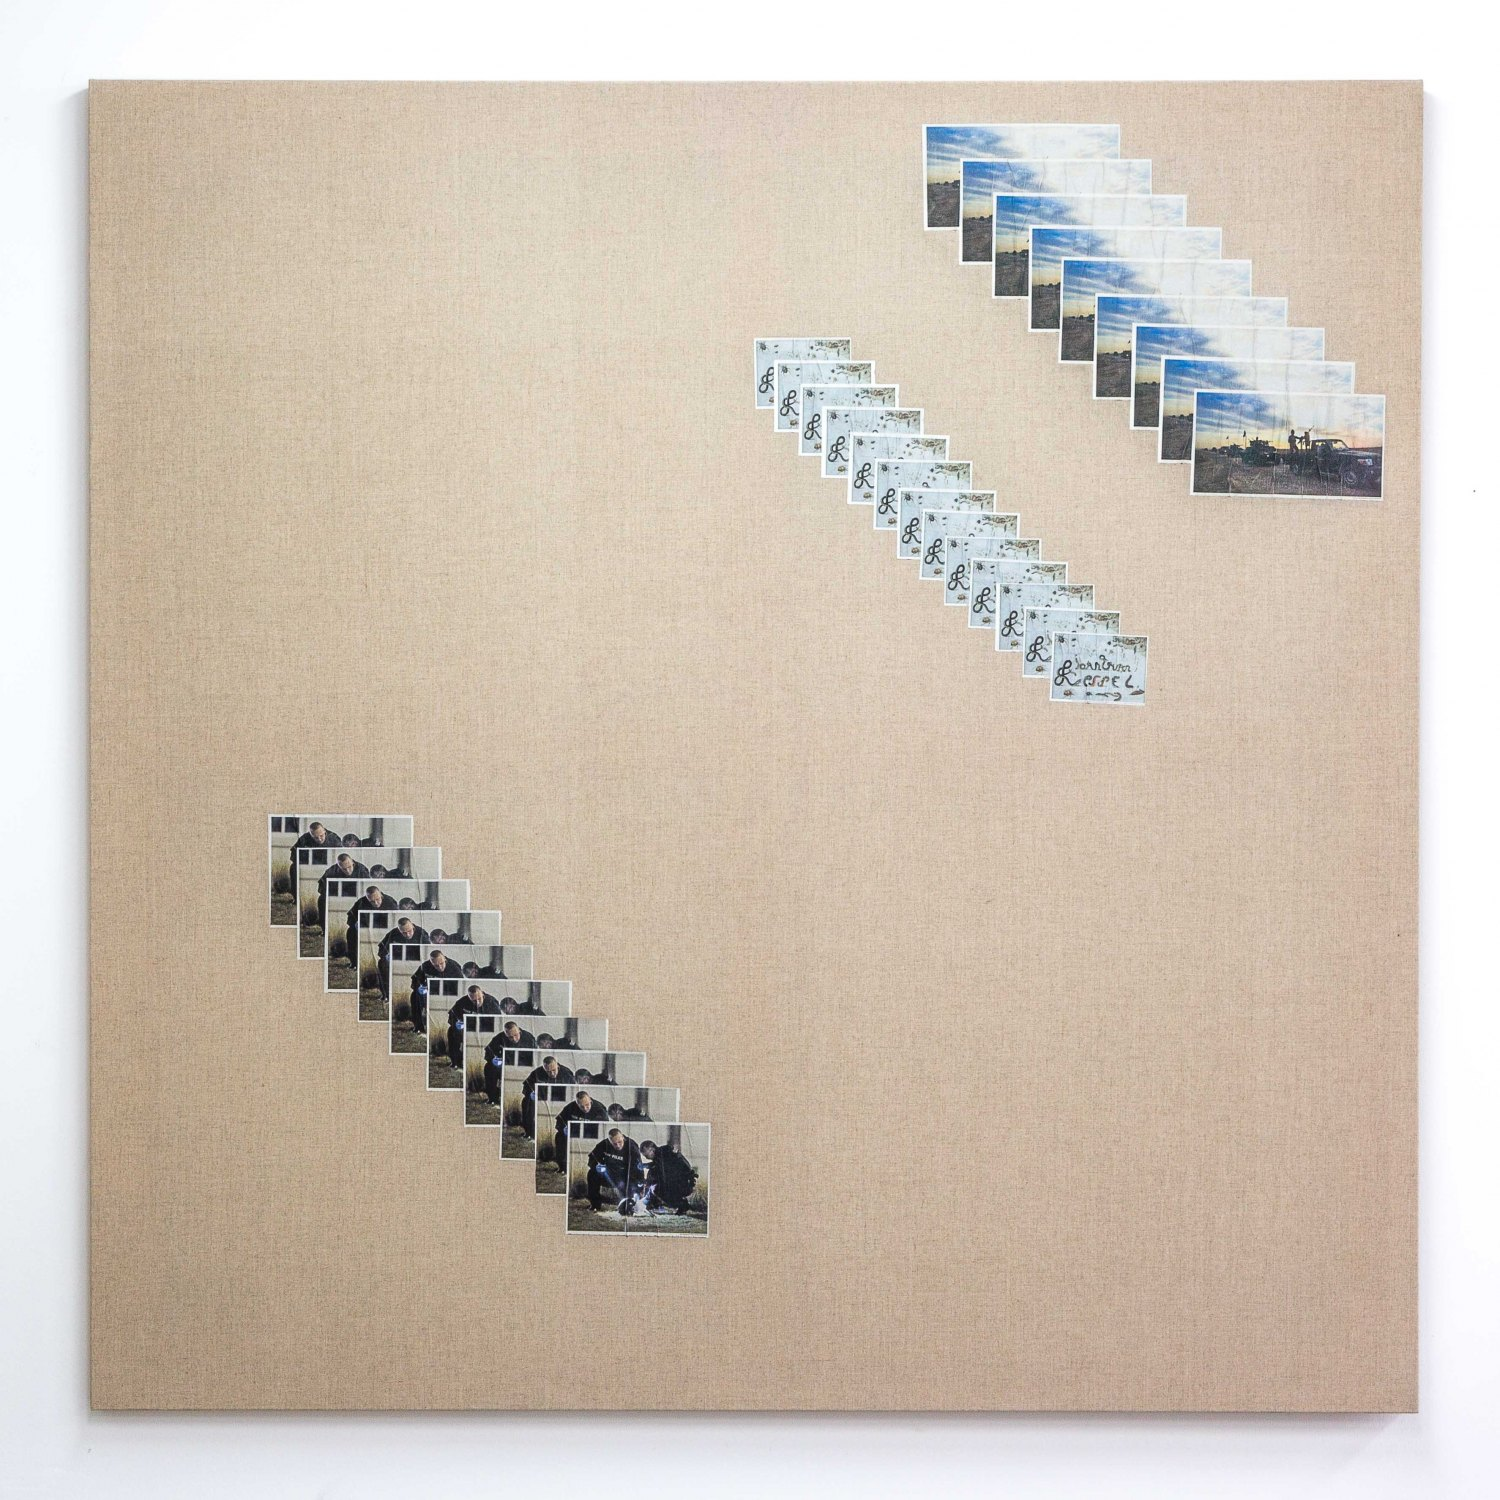 Matias Faldbakken Untitled (Canvas #100), 2015 Newspaper print on Belgian linen, wooden stretcher, 152.5 × 152.5 × 3.2 cm